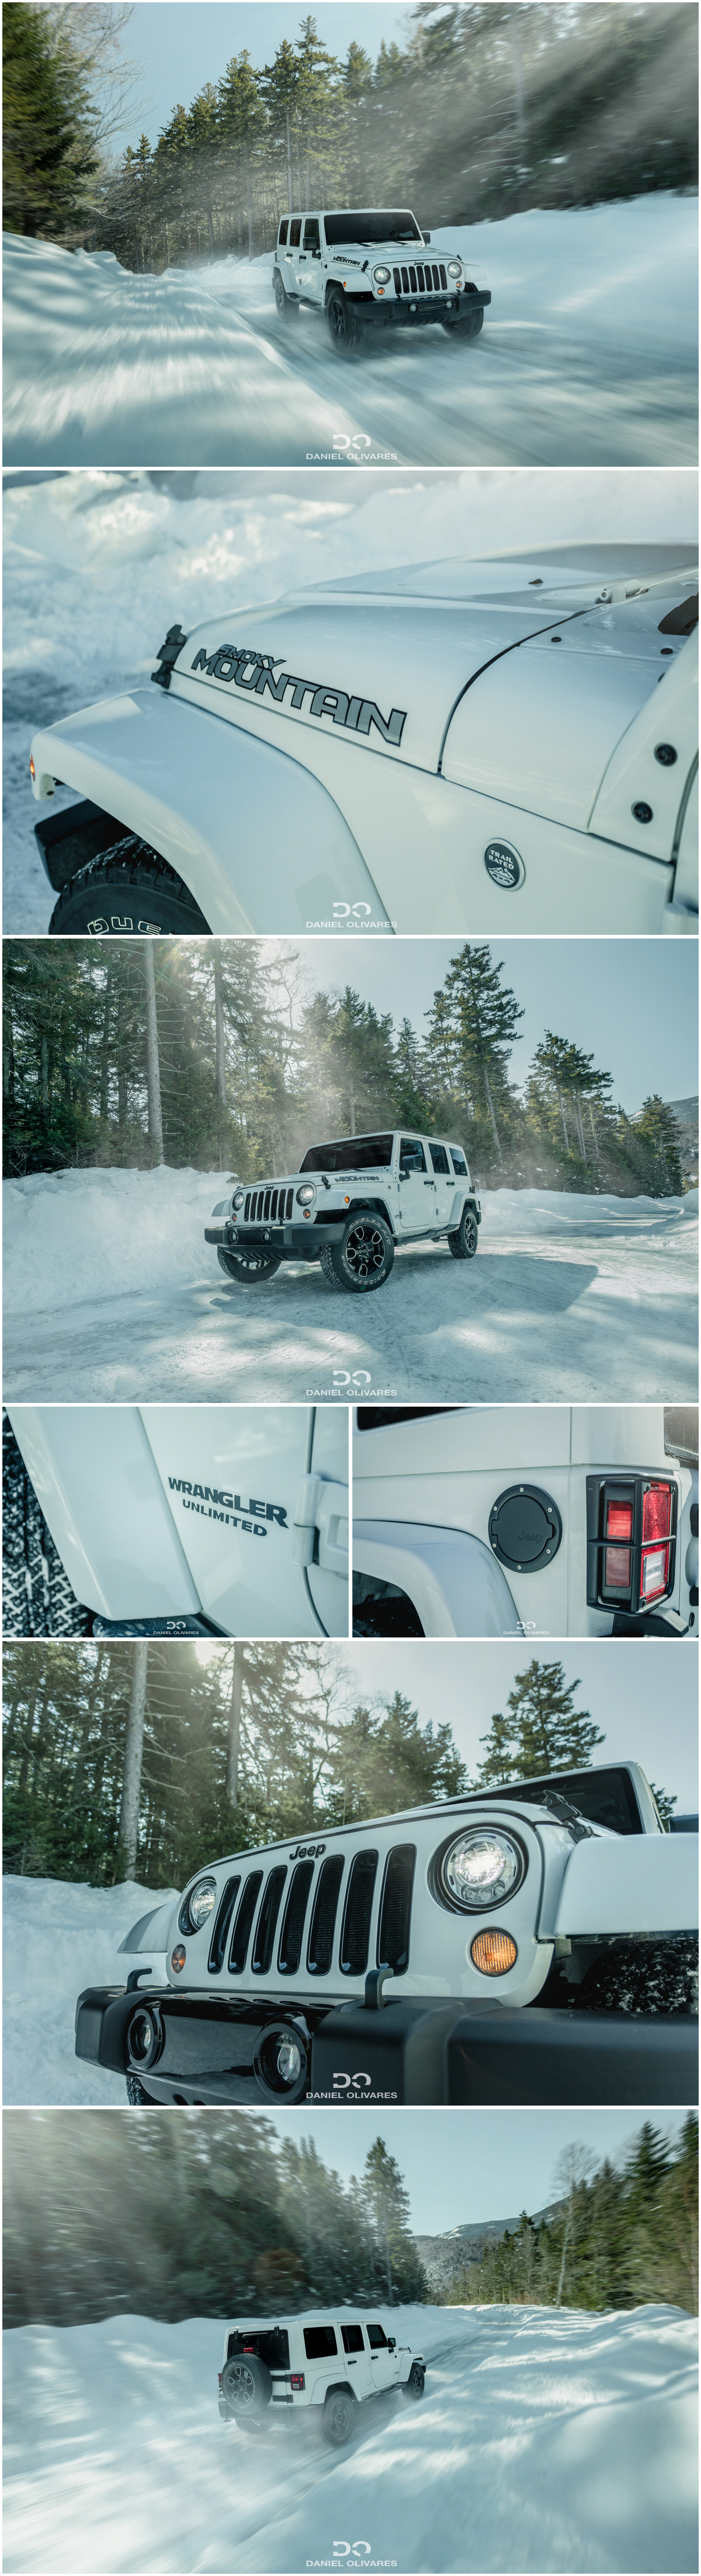 Jeep Wrangler Full.jpg